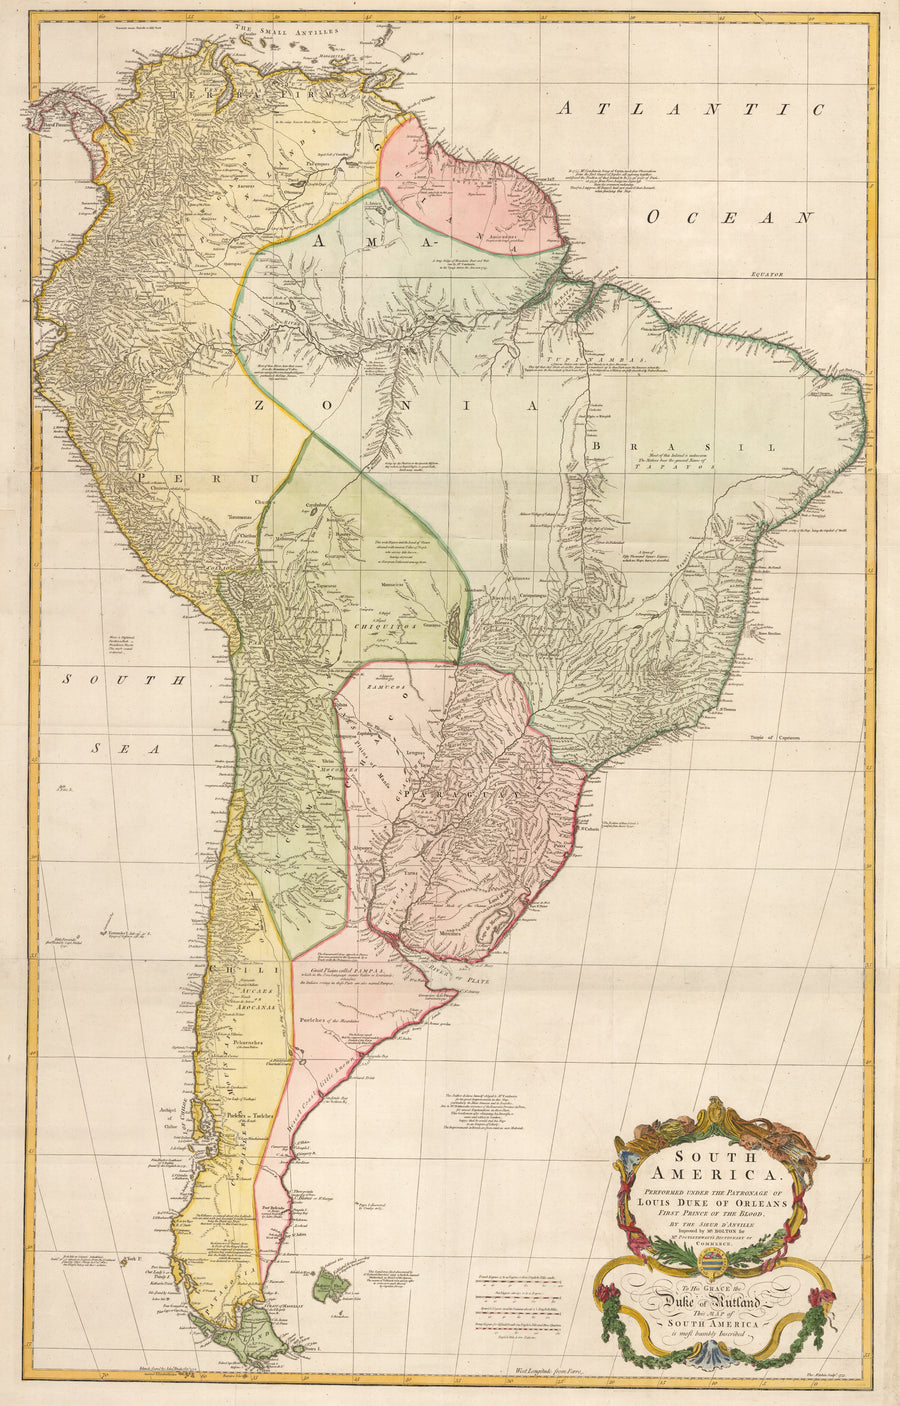 South America. Performed under the Patronage of Louis Duke of Orleans First Prince of the Blood. To His Grace the Duke of Rutland. This Map of South America is most humbly Inscribed.